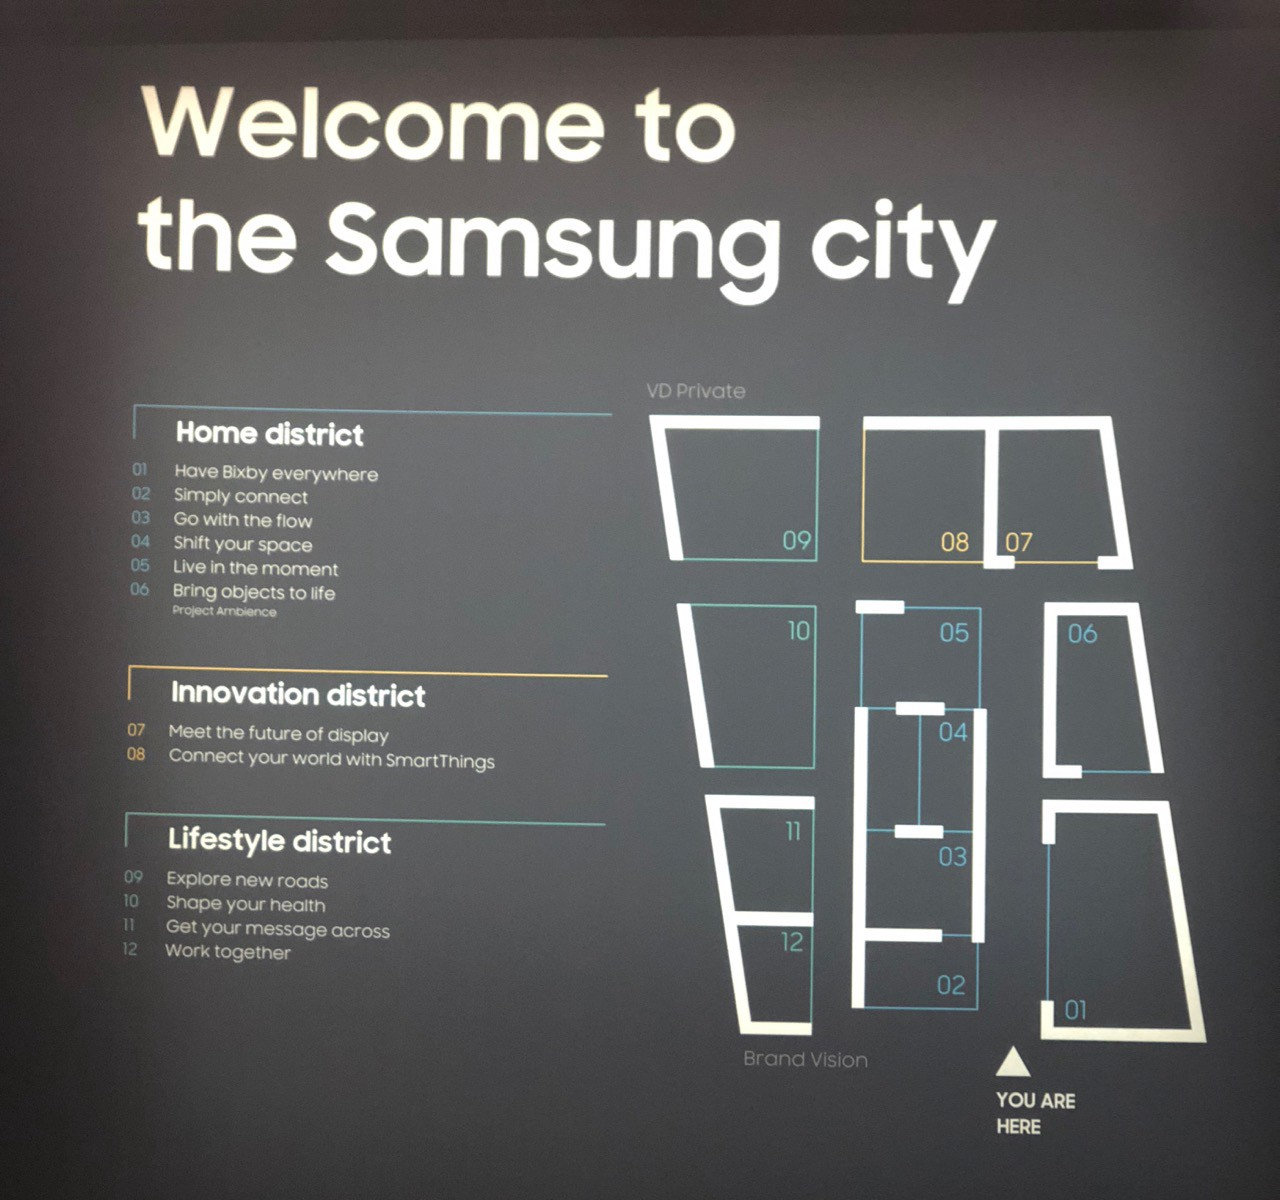 These Are The Maps For The Lg And Samsung Booths Included Just To Gibe A Sense Of Scale And Breadth